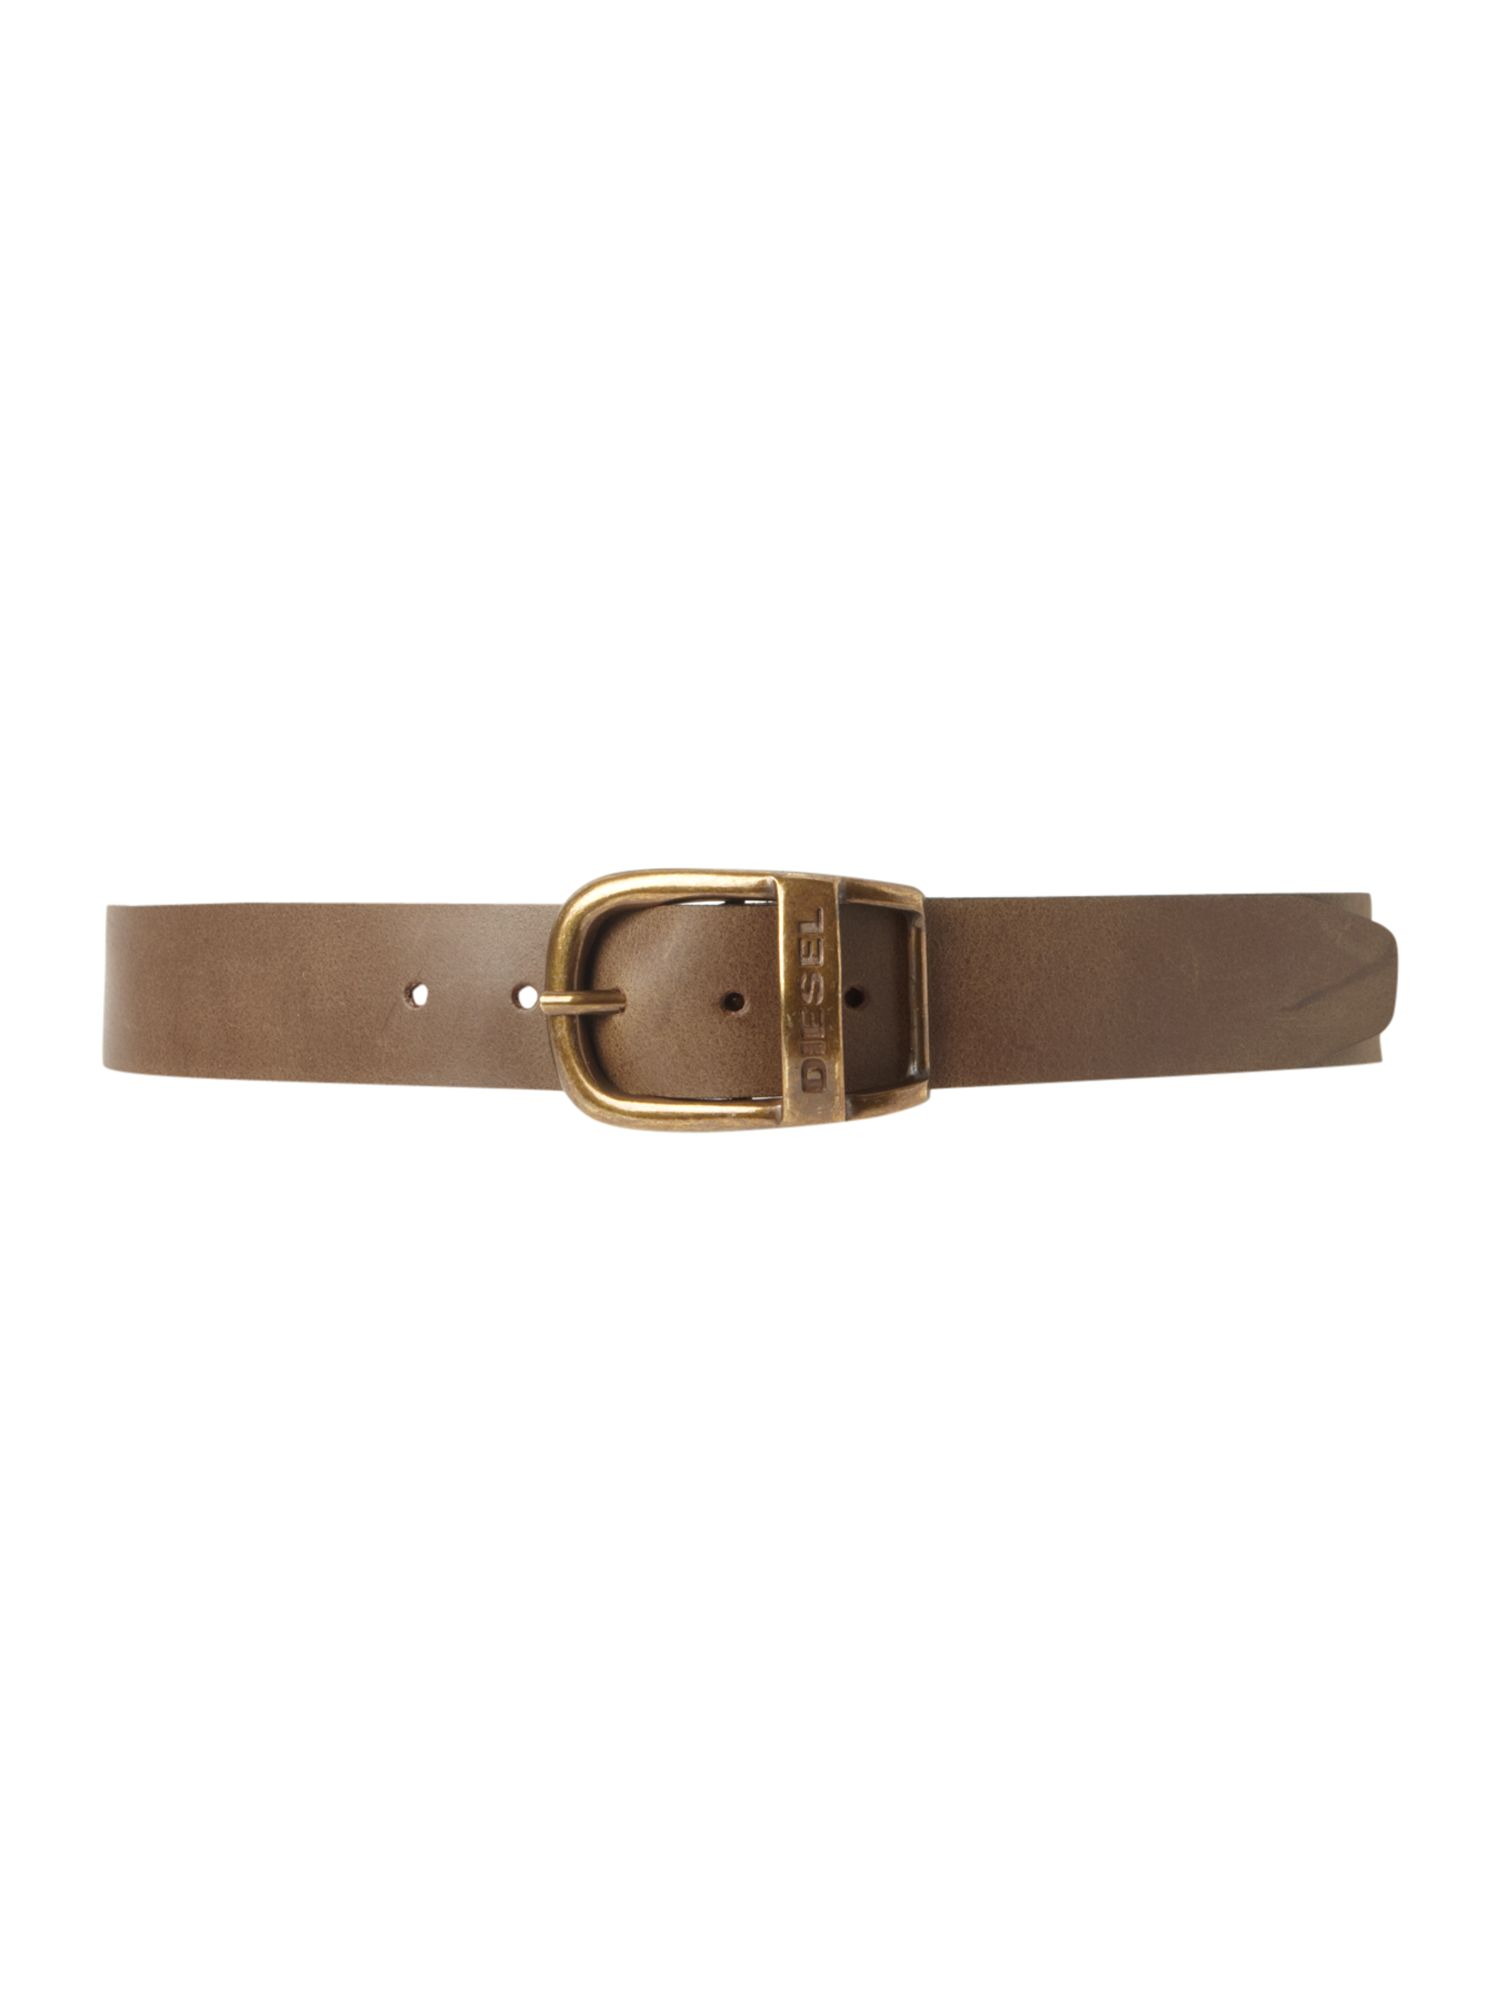 Distressed oval buckle belt